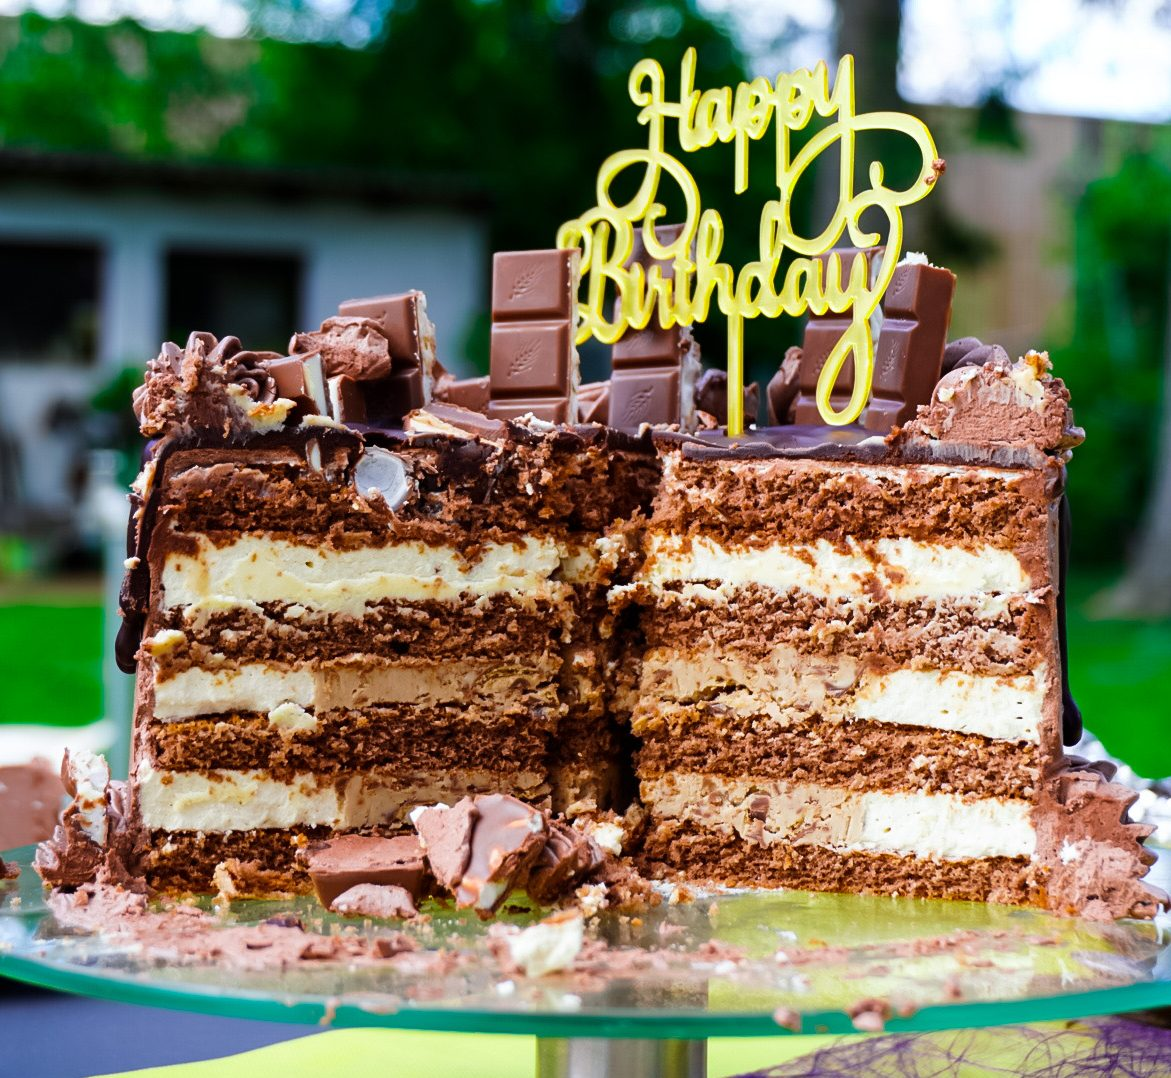 You are currently viewing Haselnuss/Kinder Bueno Torte (Ohne Backen/No Bake)